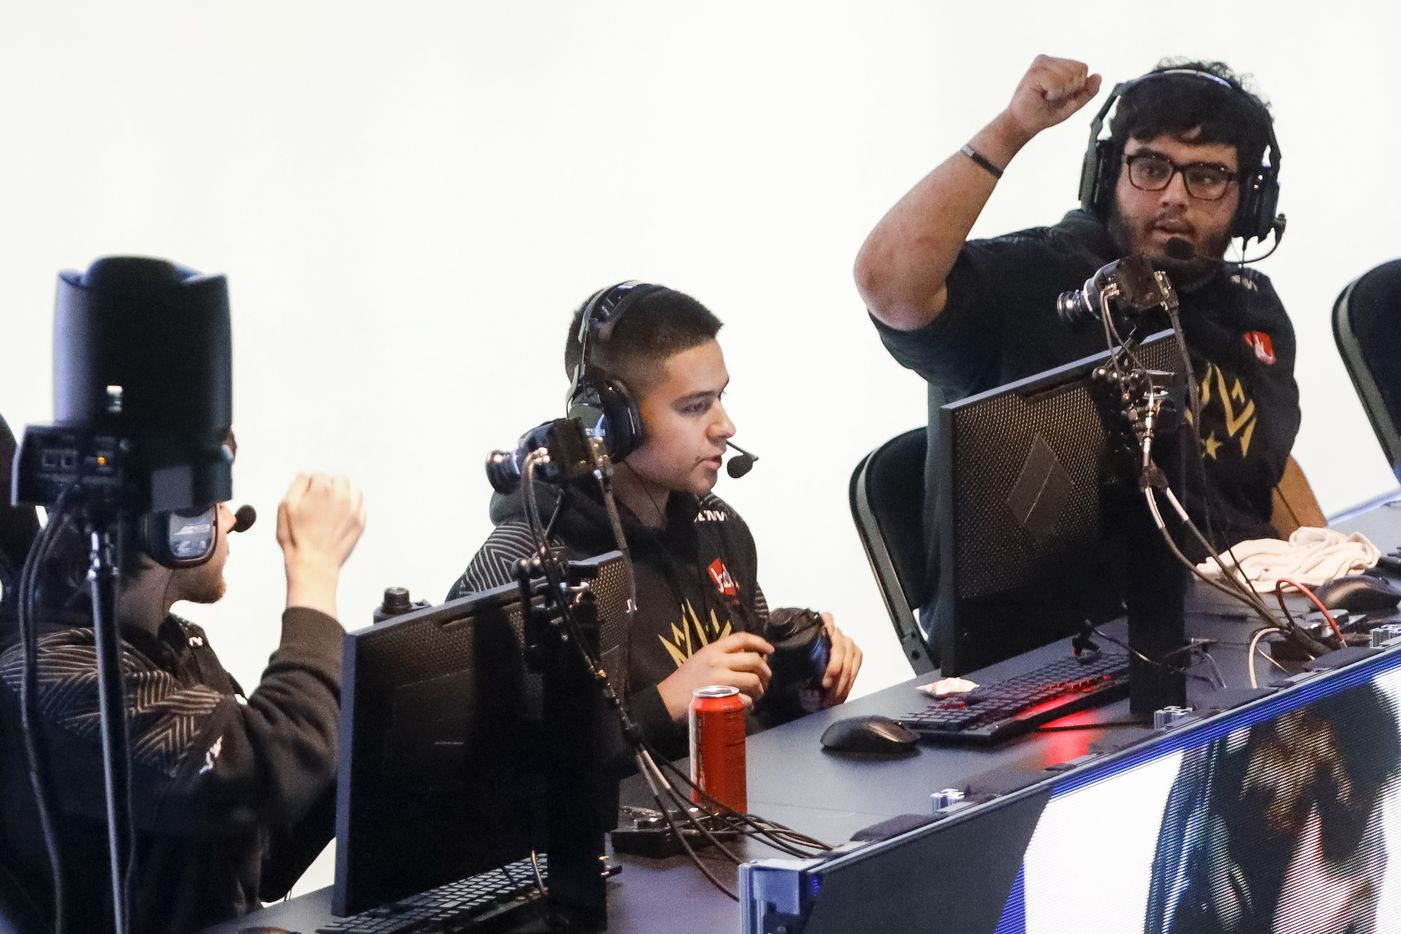 """Indervir """"iLLeY"""" Dhaliwal (right) reacts with Anthony """"Shotzzy"""" Cuevas after winning a game for Dallas Empire against Chicago OpTic during the Call of Duty League Major V tournament at Esports Stadium Arlington on Sunday, Aug. 1, 2021, in Arlington. Empire finished 4th in the tournament after a 3-1 loss to OpTic. (Elias Valverde II/The Dallas Morning News)"""